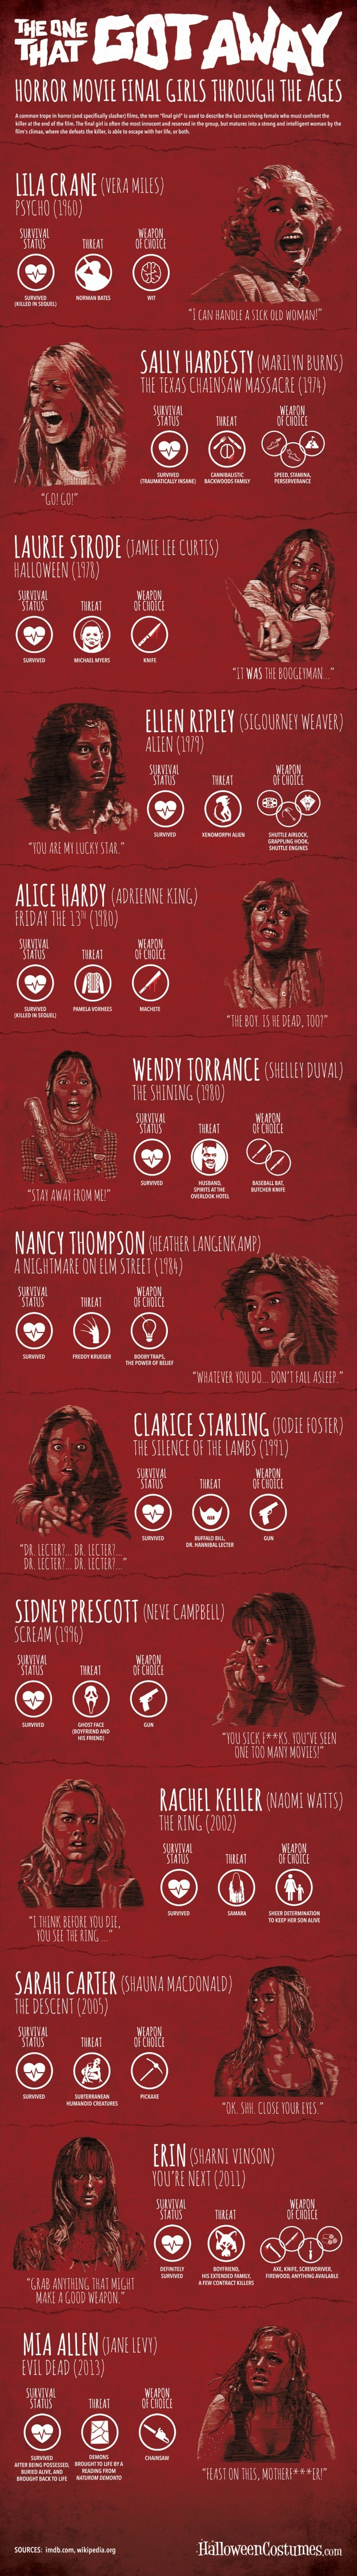 final girls1 - Final Girls Infographic Takes a Look Through the Years